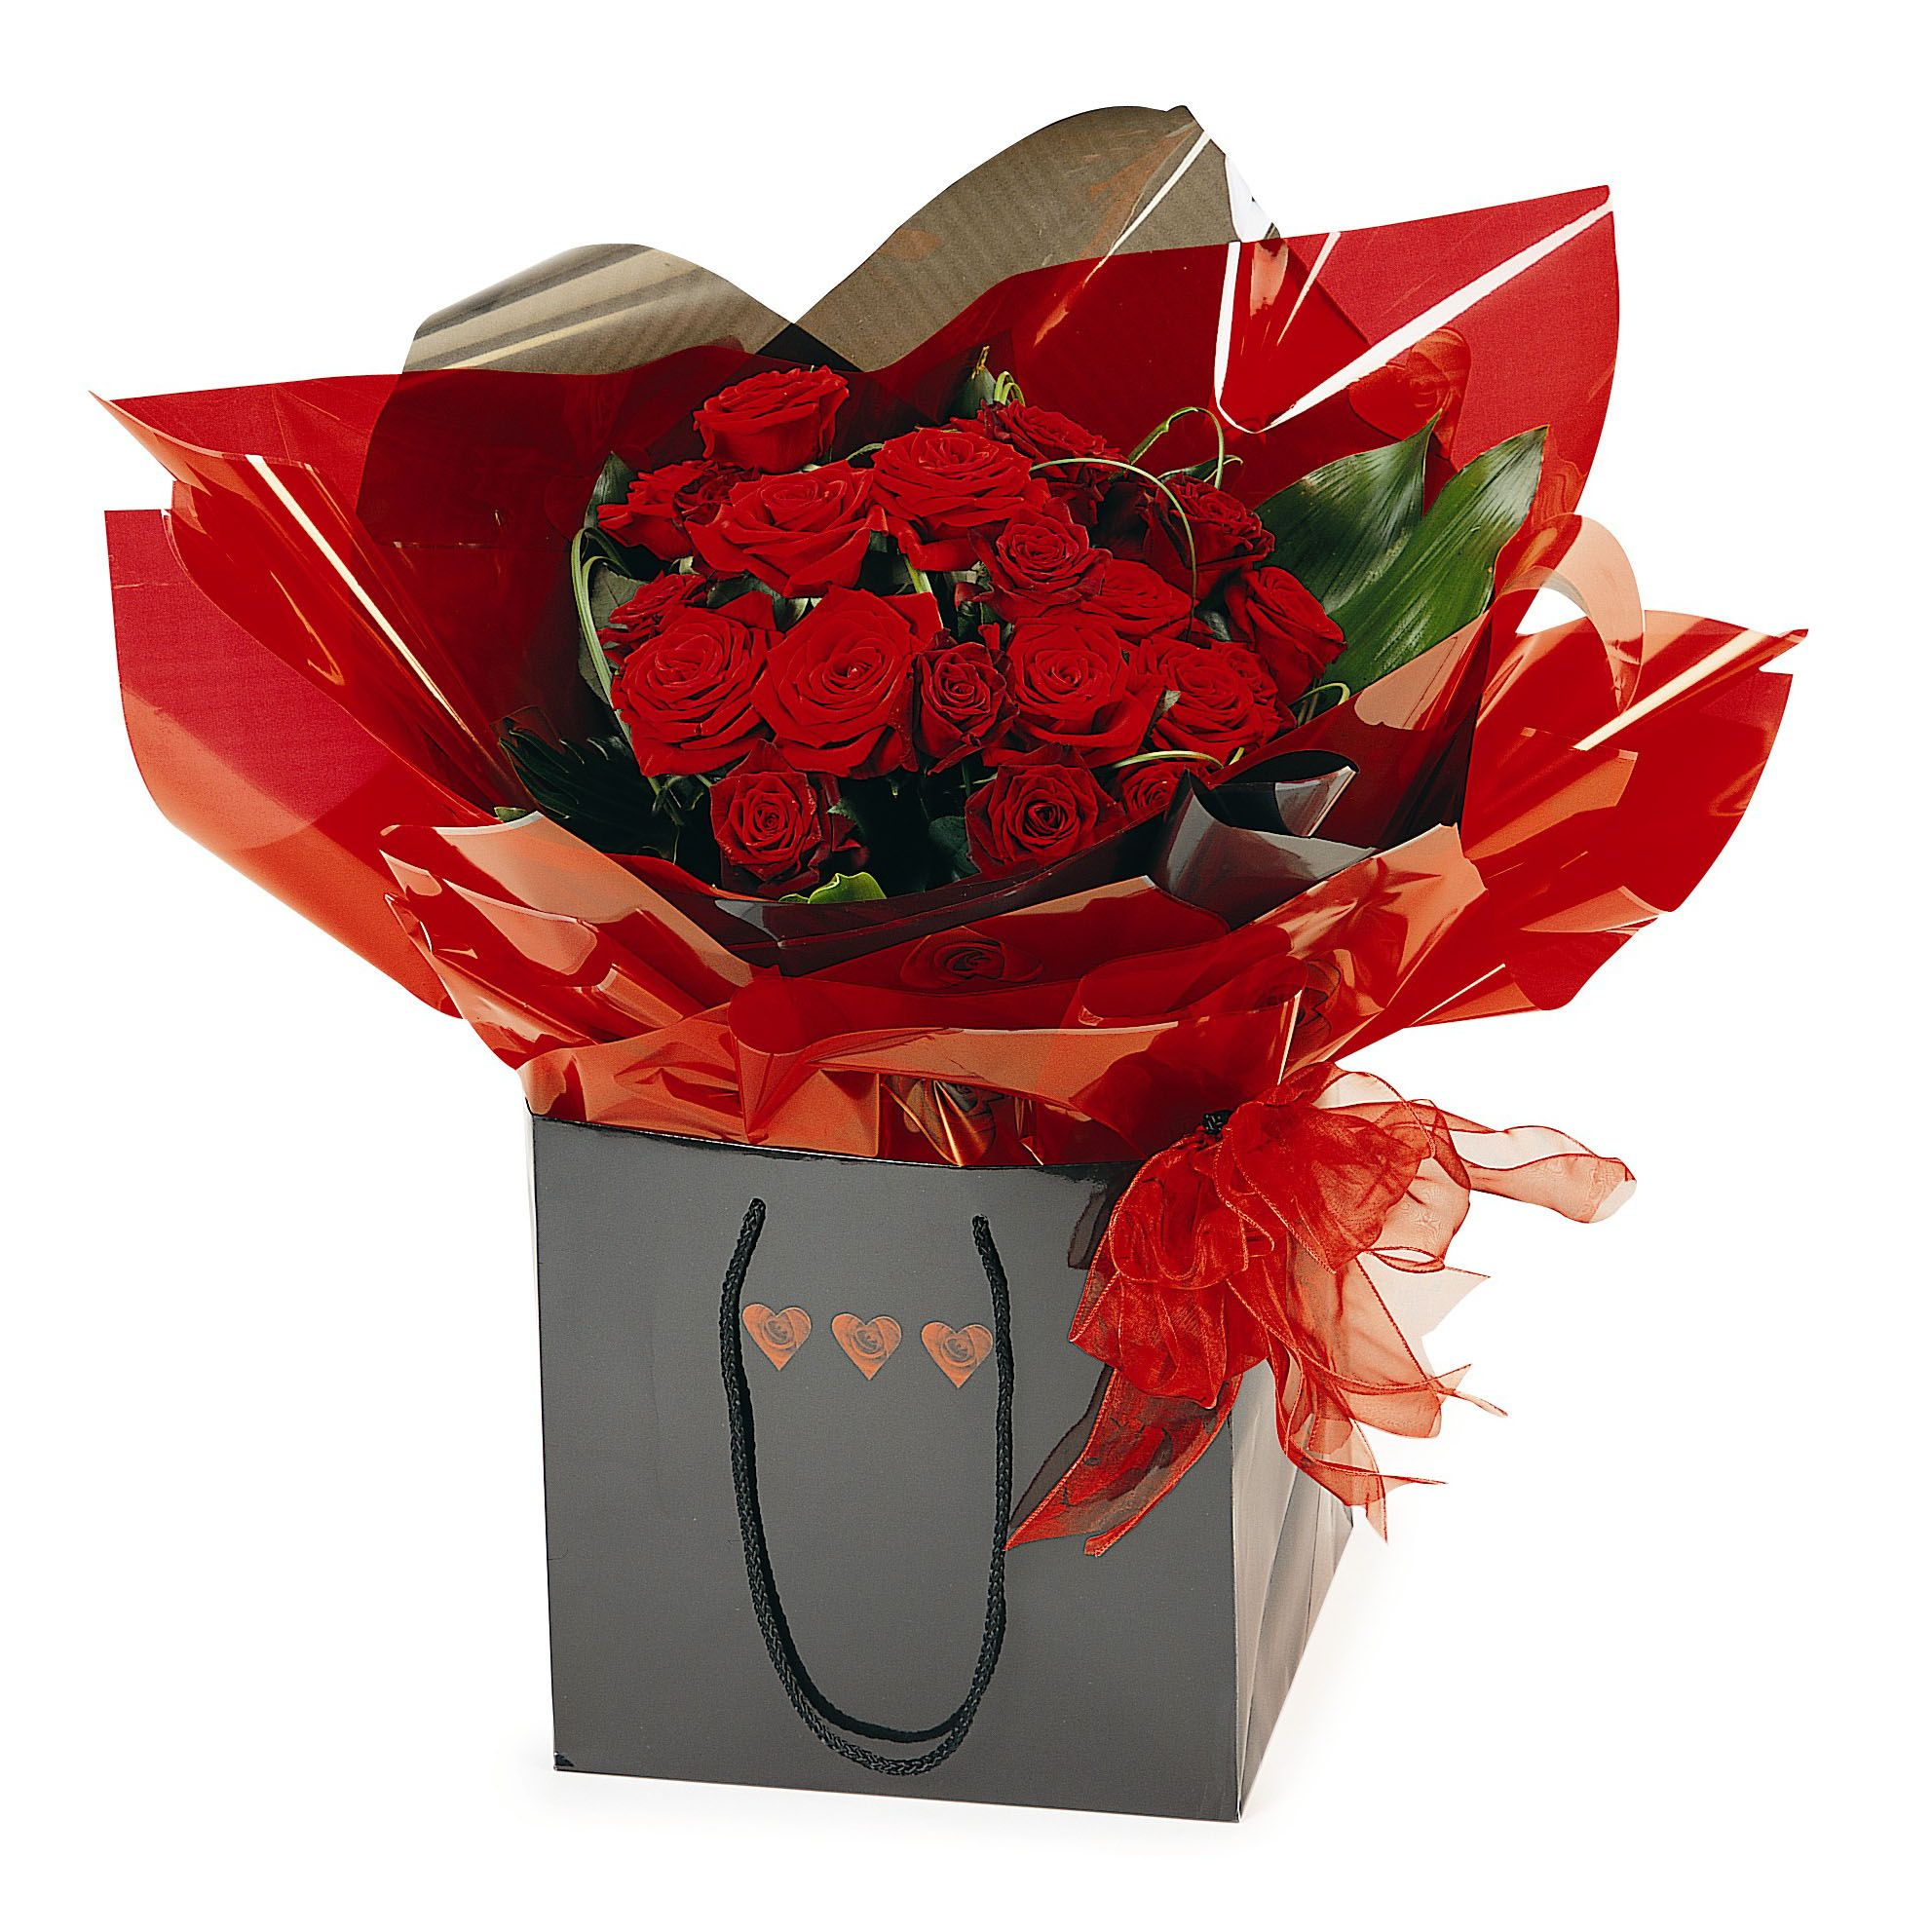 valentines day bouquets - HD1983×1983